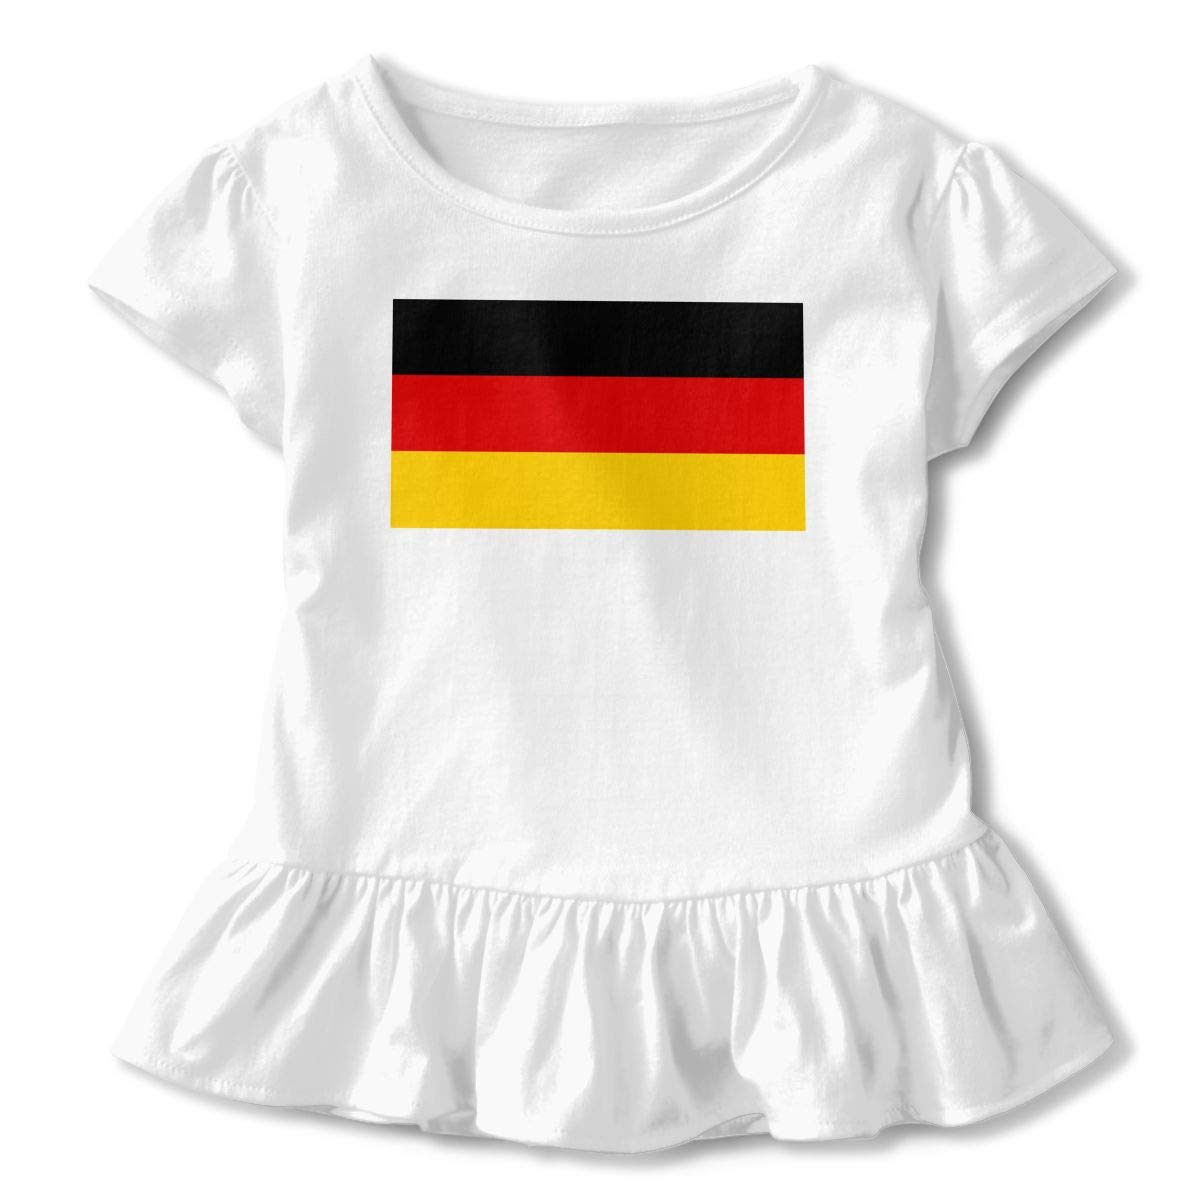 Flag of Germany Baby Girls Short Sleeve Ruffles T-Shirt Tops 2-Pack Cotton Tee